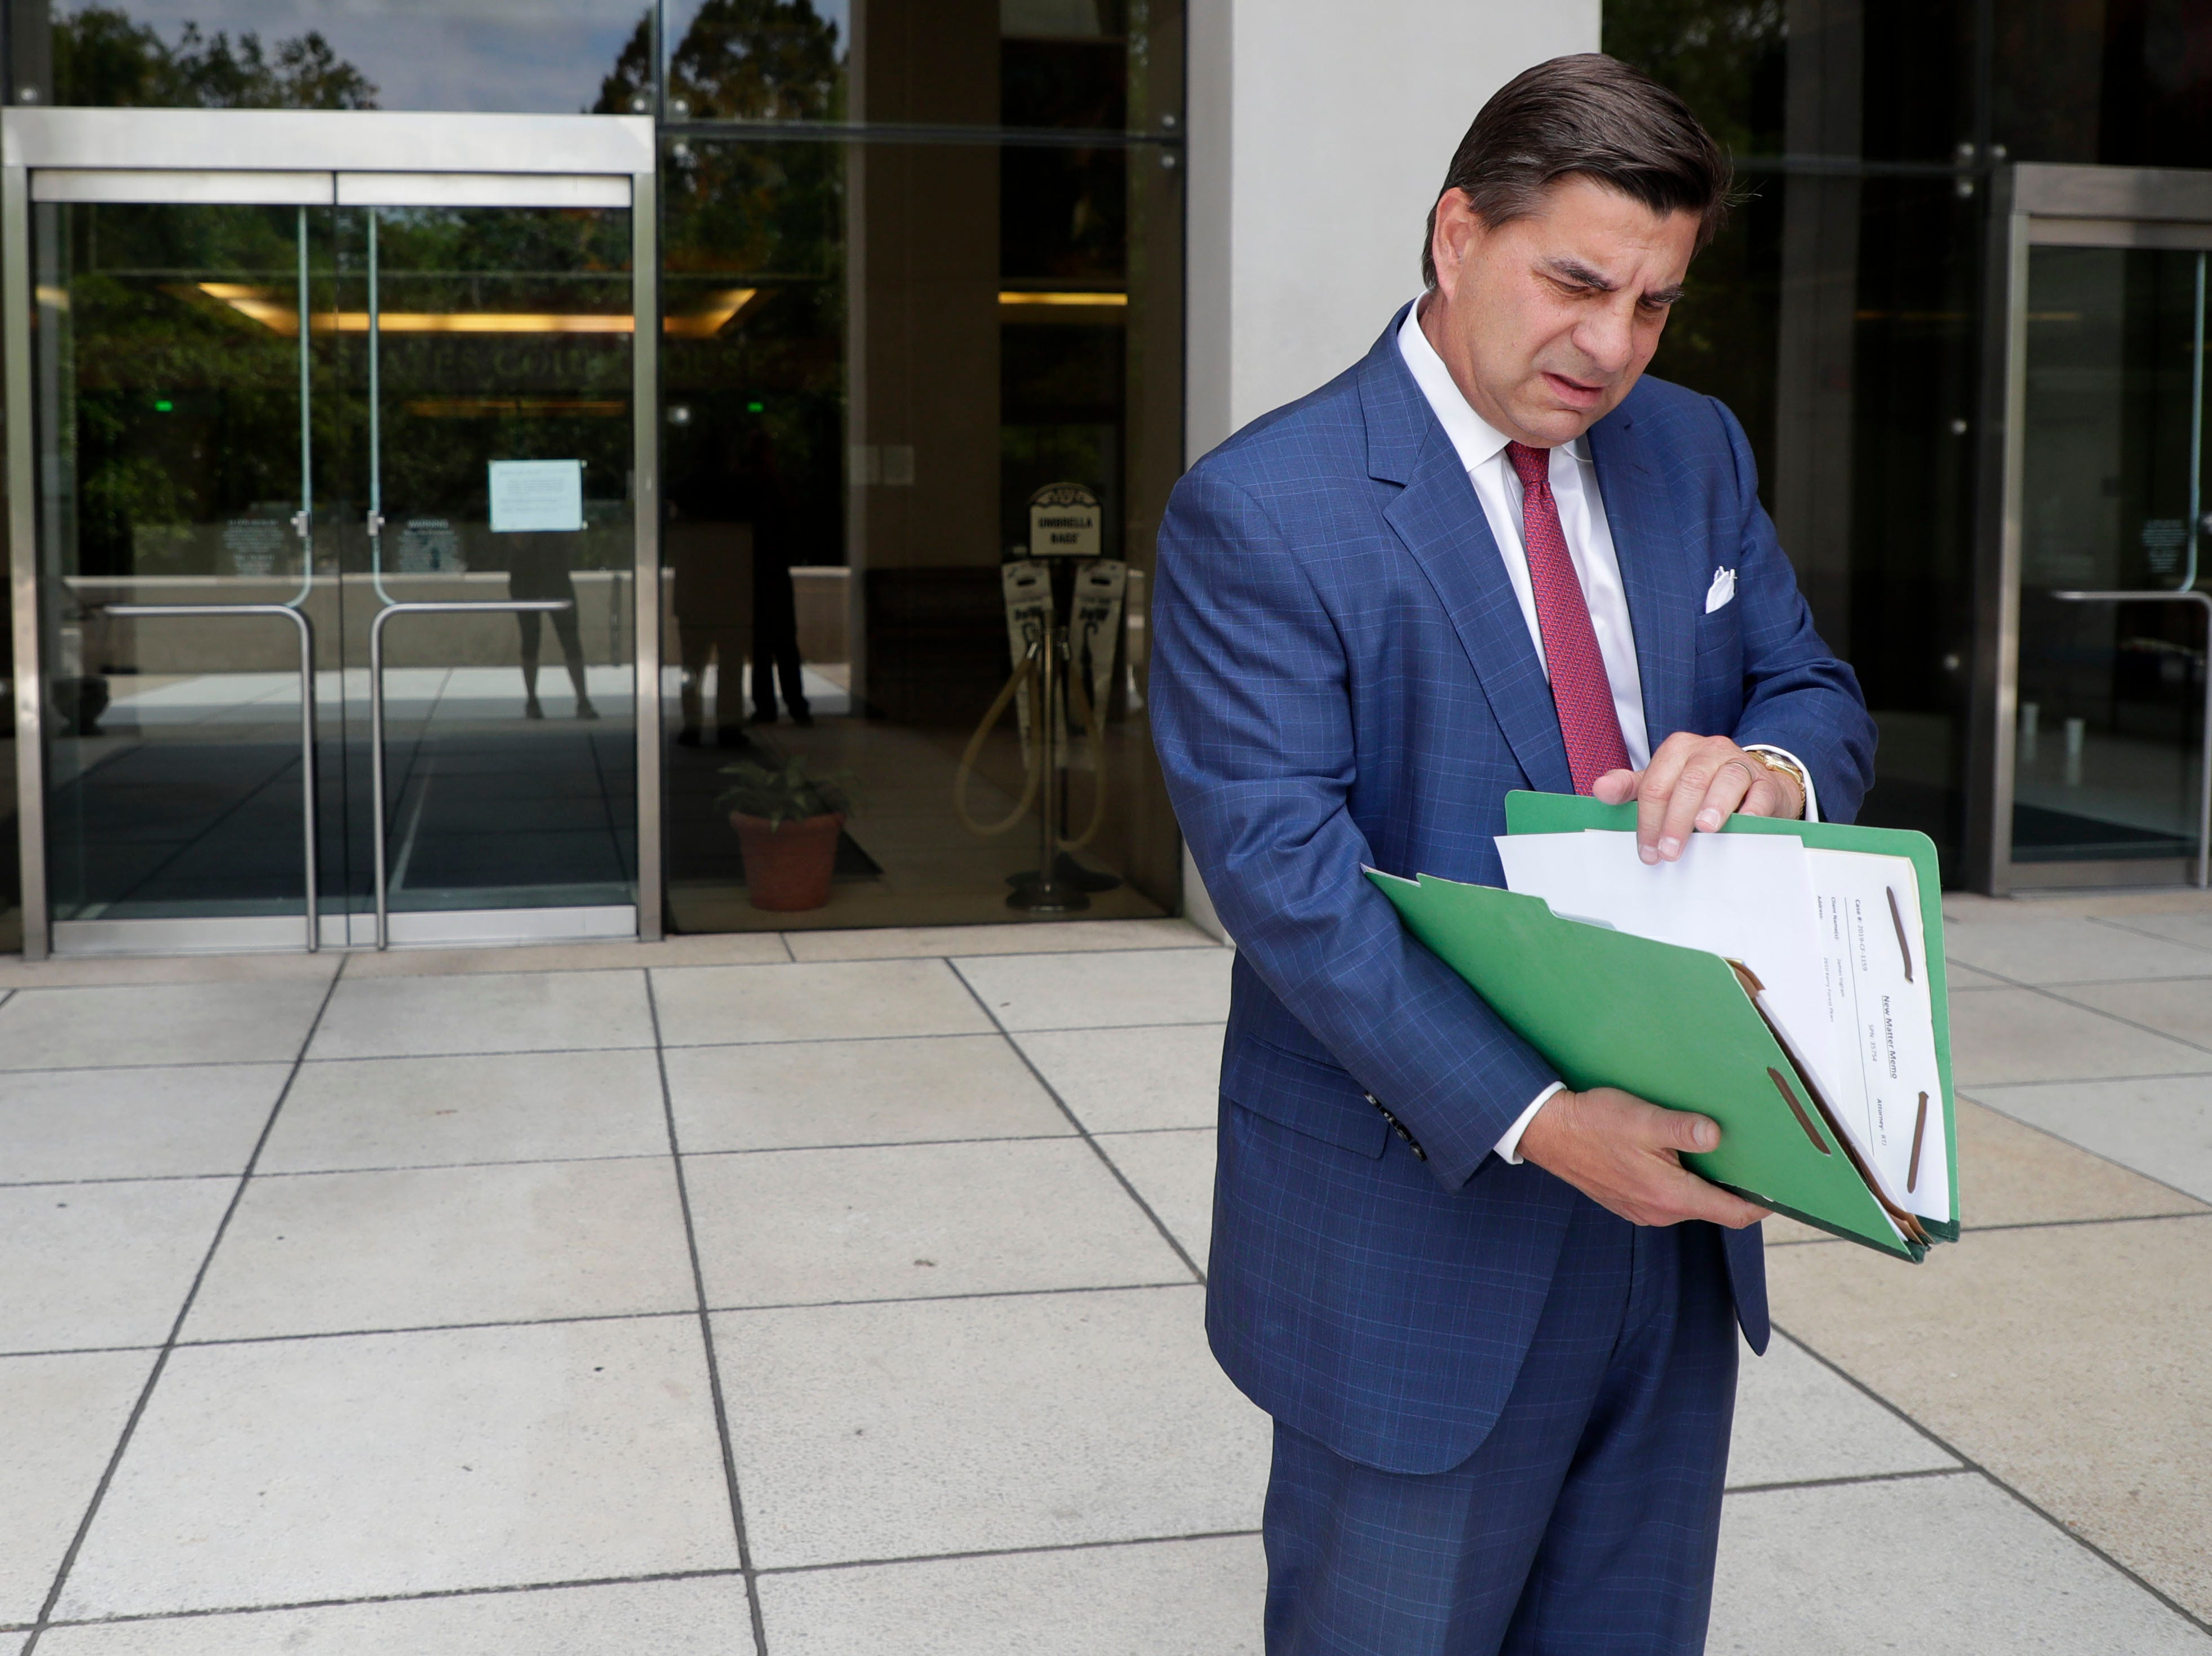 Tallahassee attorney Tim Jansen looks through his files as he speaks with the Tallahassee Democrat about J.T. Burnette's indictment in the FBI's long-running public corruption probe Thursday, May 9, 2019.